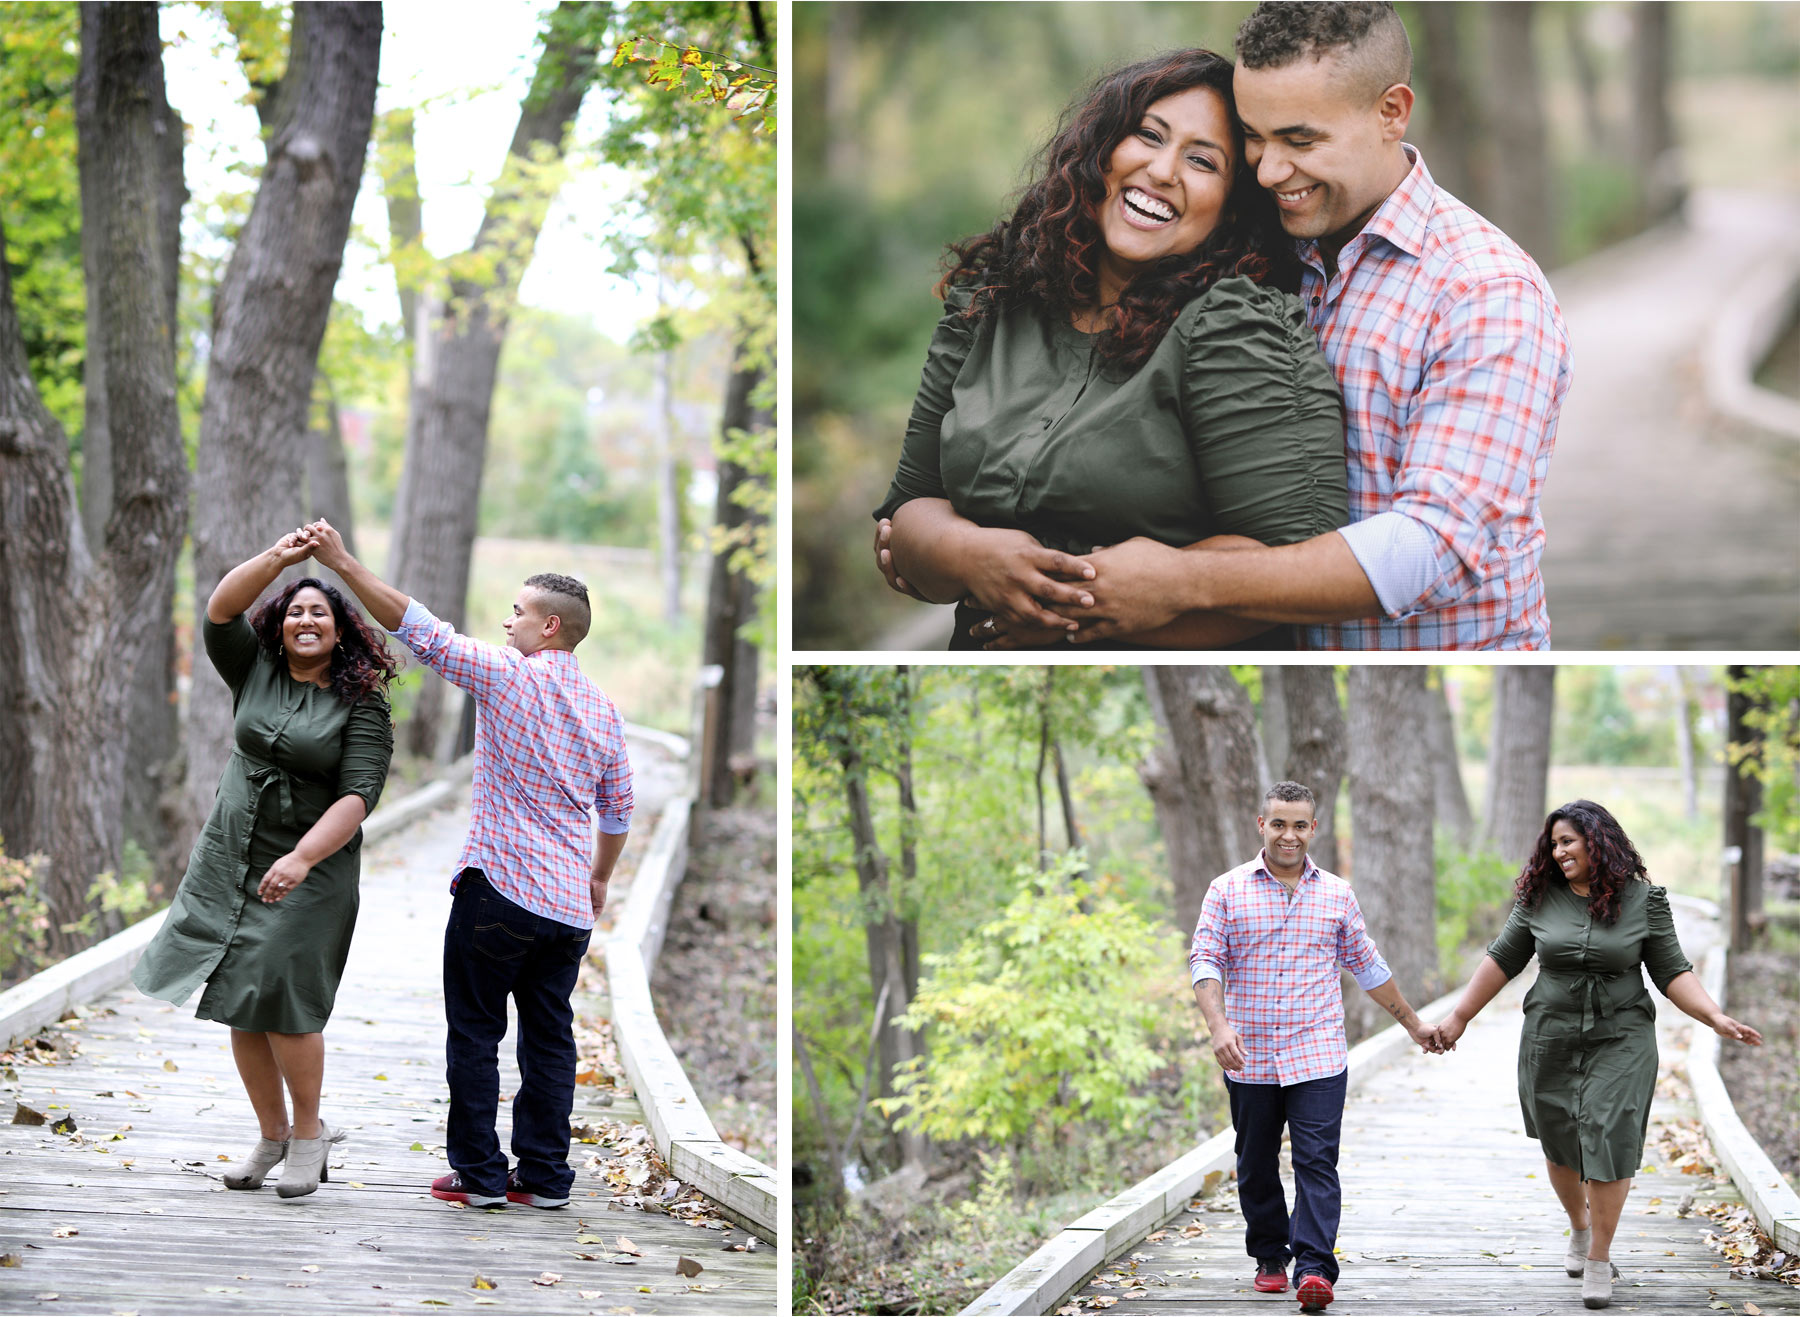 05-Vick-Photography-Get-Aquainted-Session-Engagement-Park-Kiss-Laughing-Leena-and-Michael.jpg